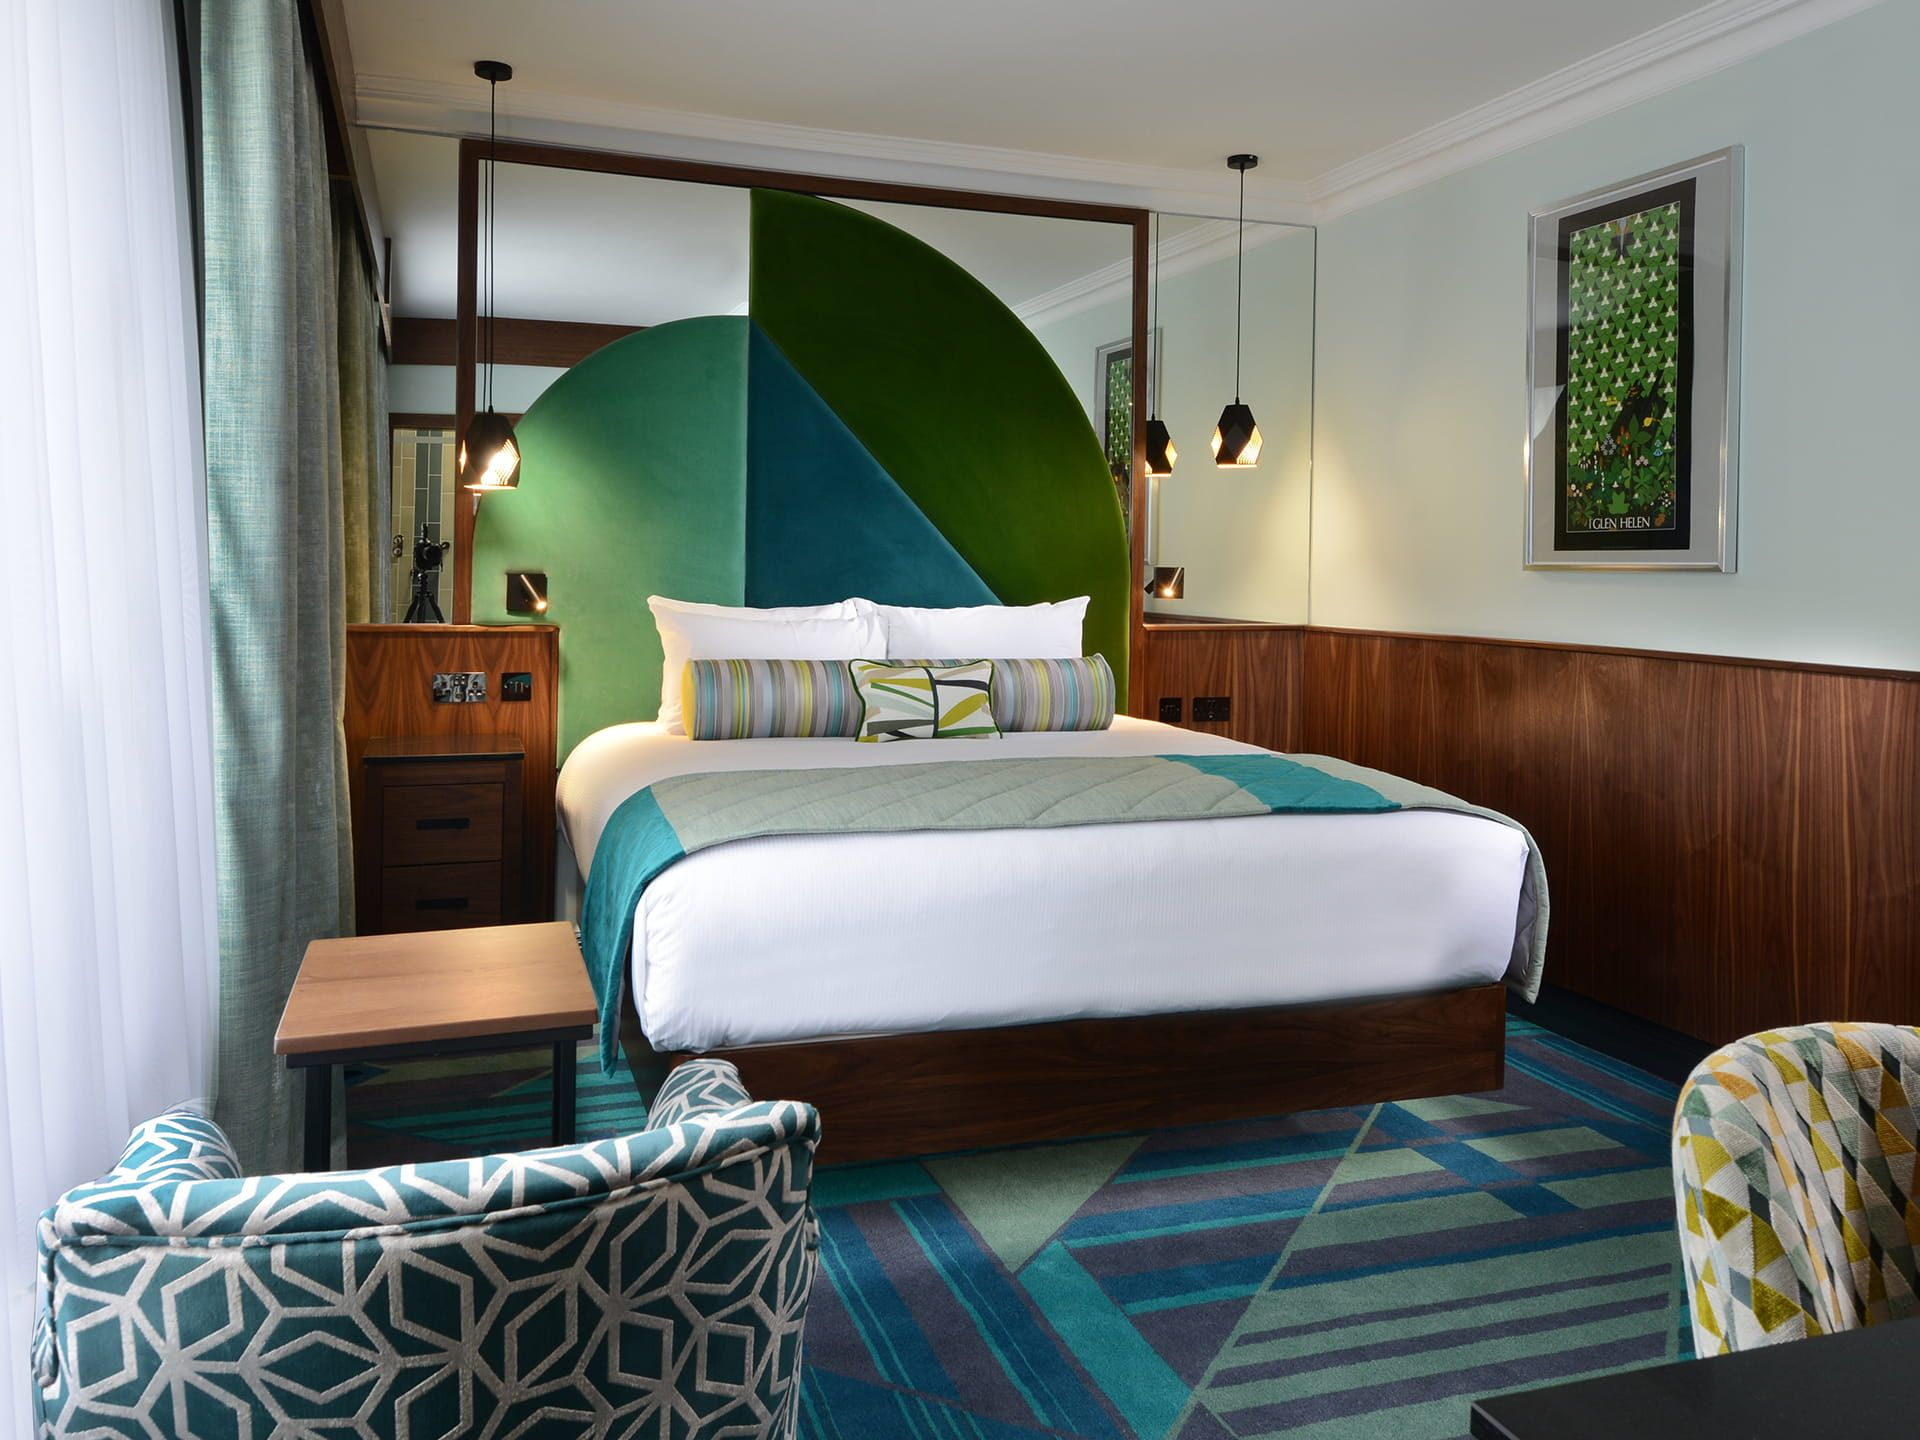 Superior Room with large bed in Arthaus hotel